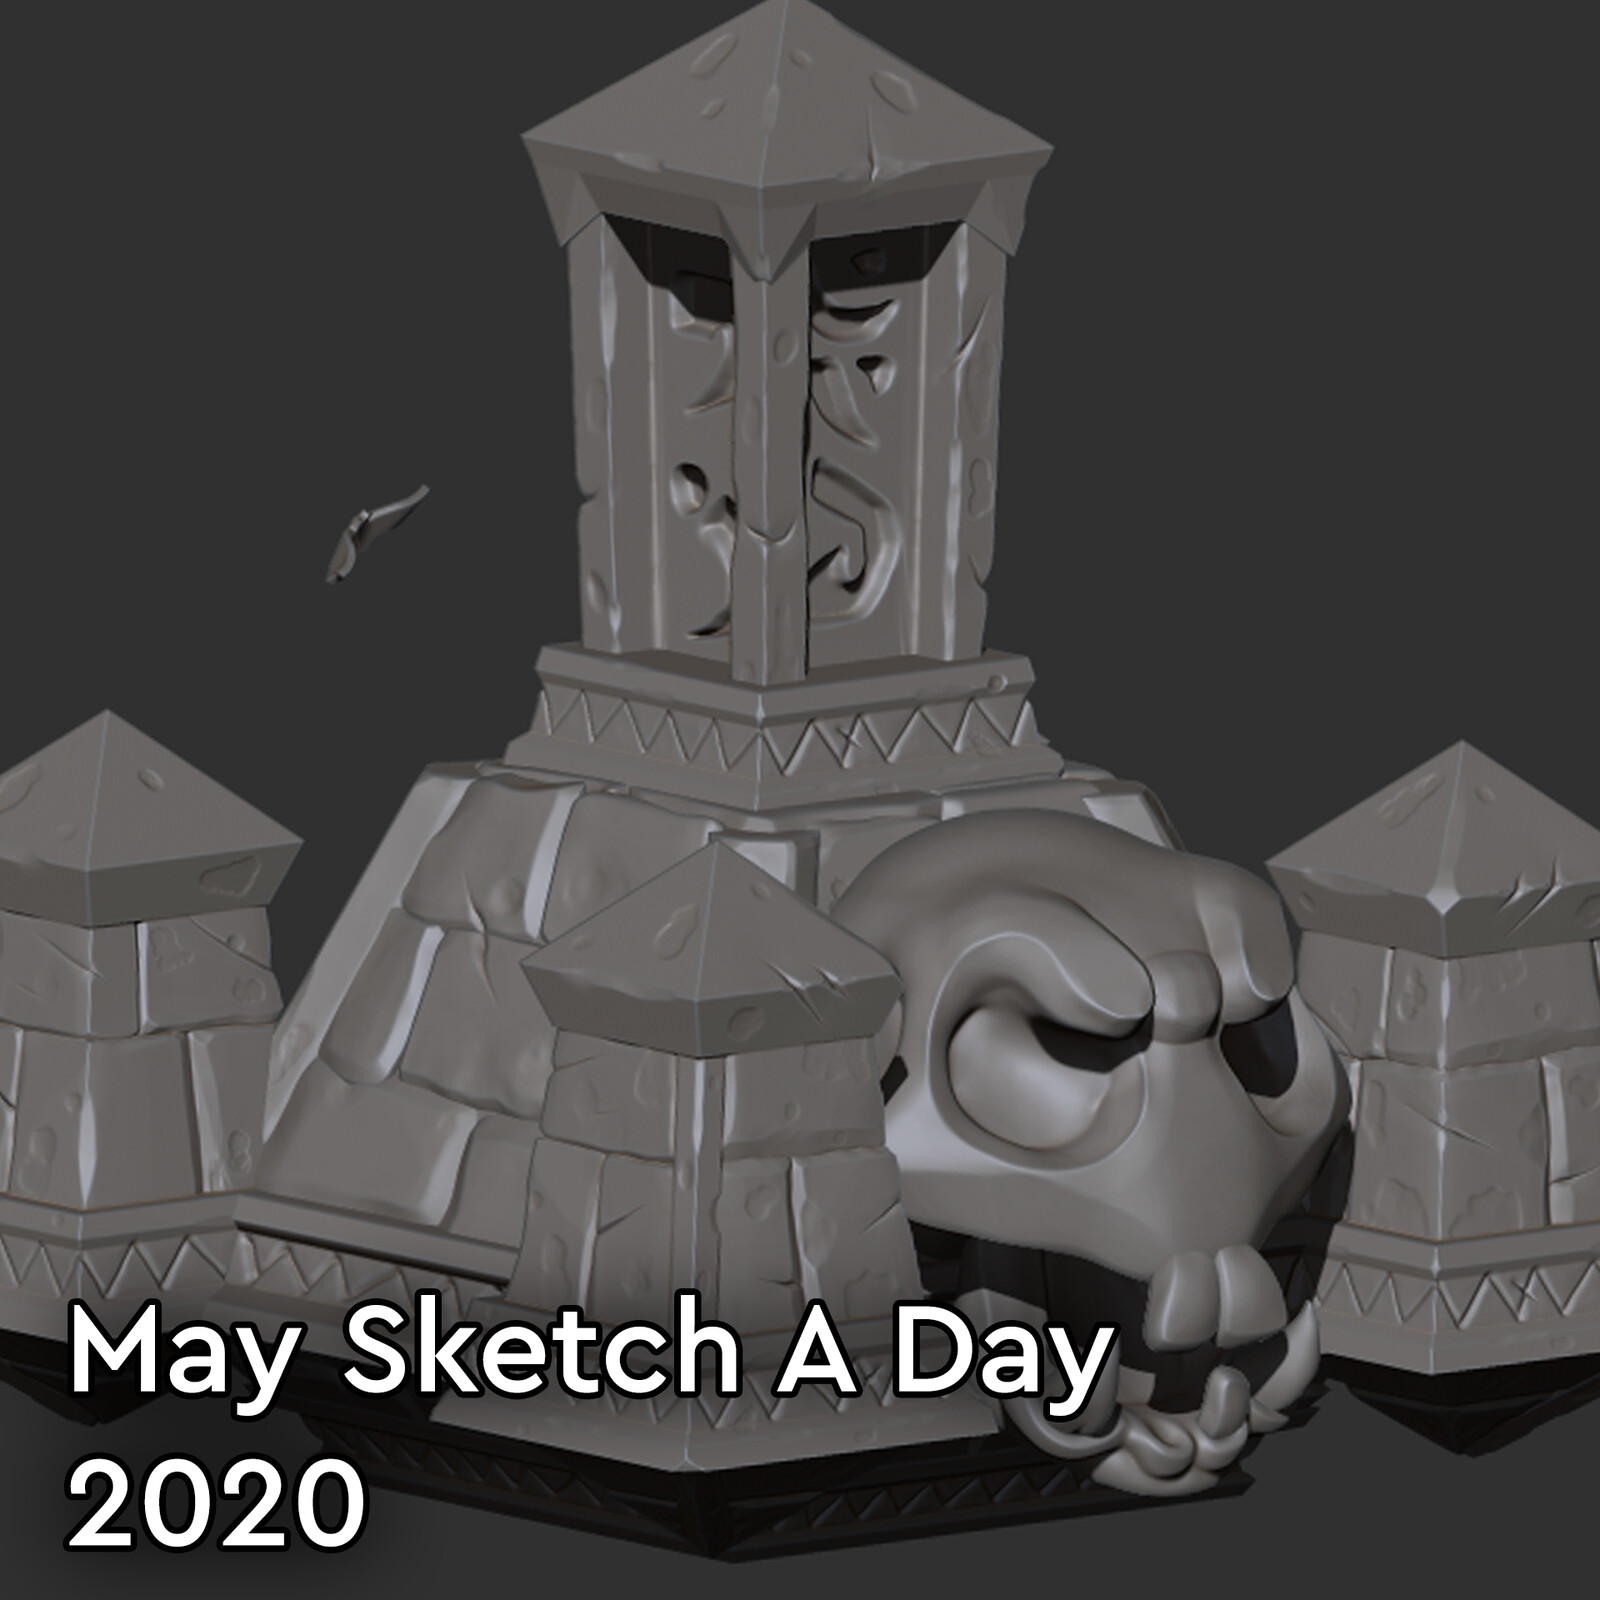 May Sketch a Day 2020 -Learning Zbrush